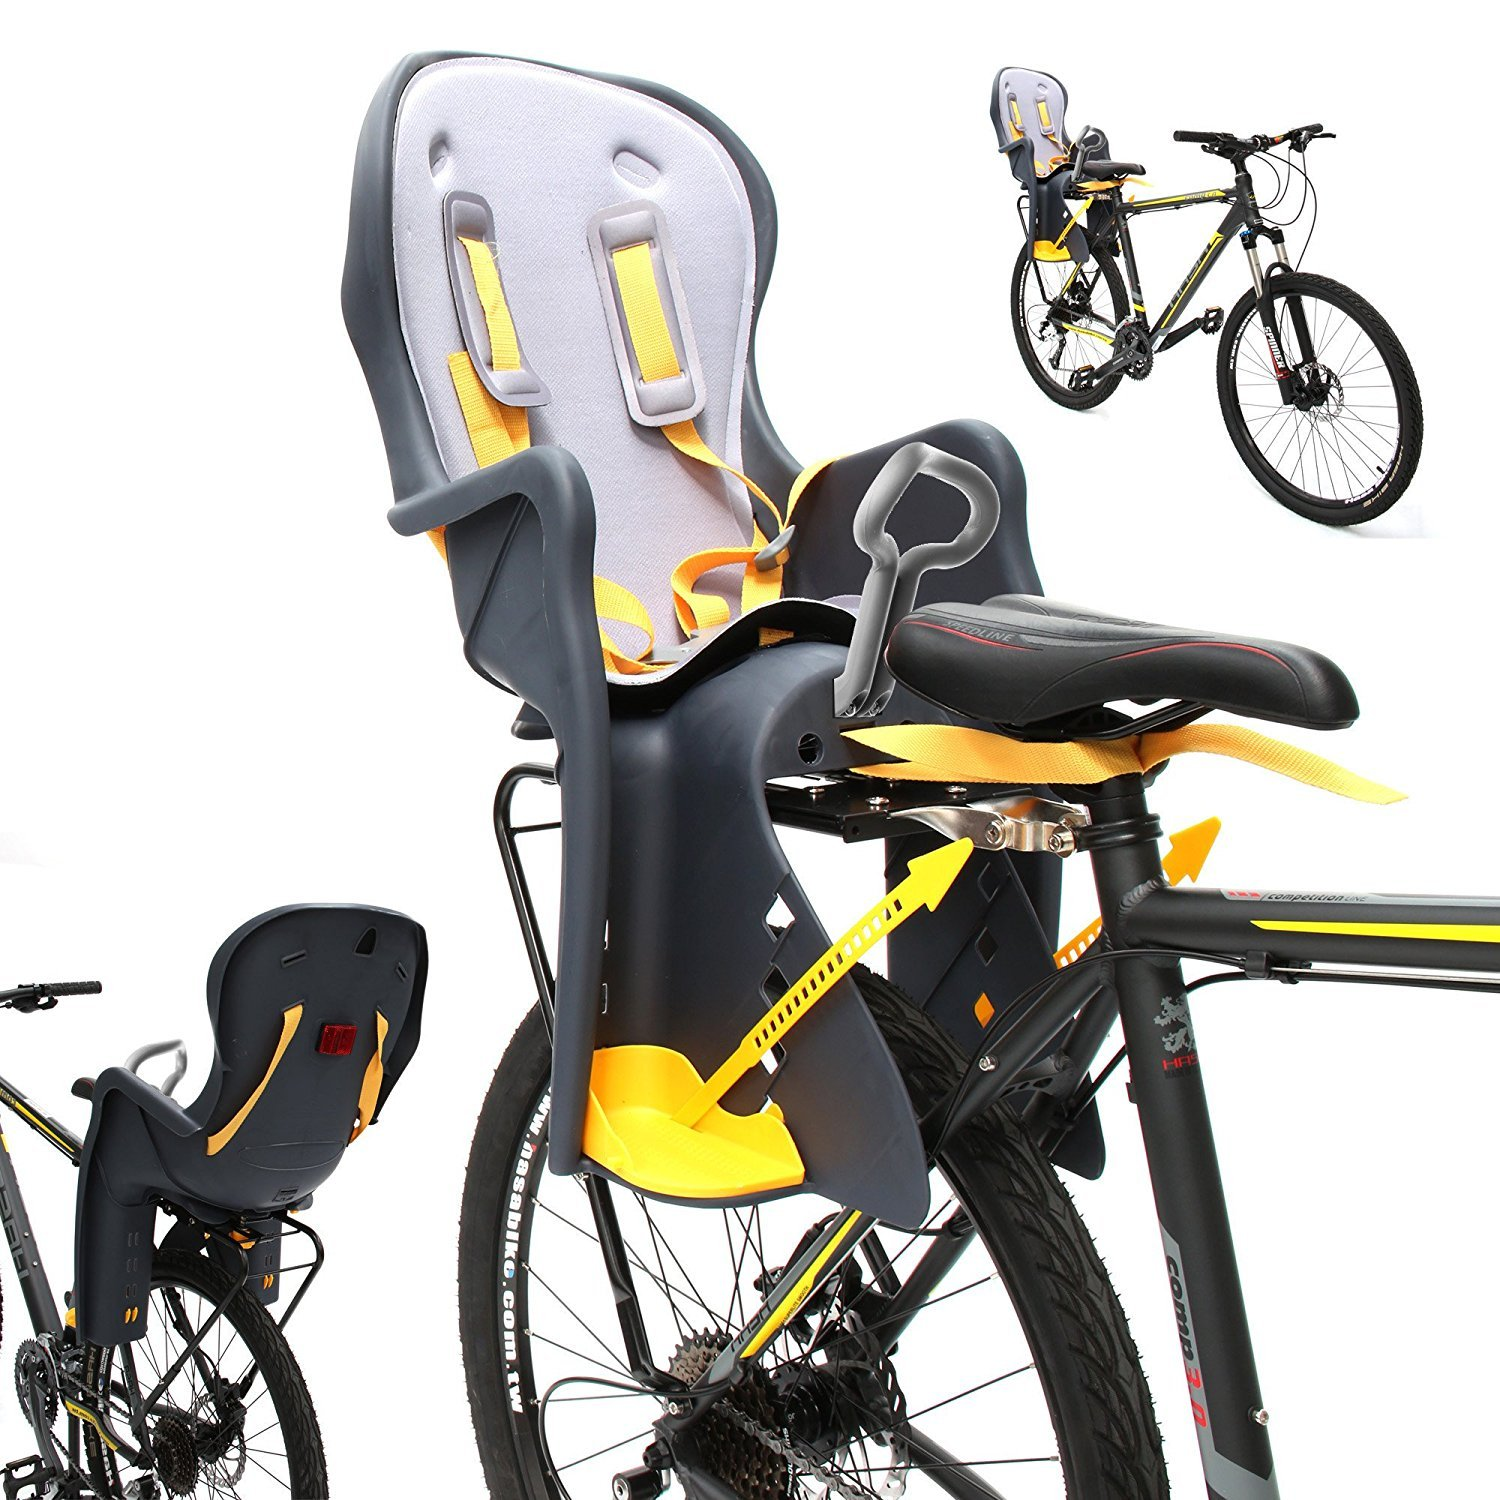 CyclingDeal Bicycle Kids child Rear Baby Seat bike Carrier USA Standard With Rack by CyclingDeal (Image #3)